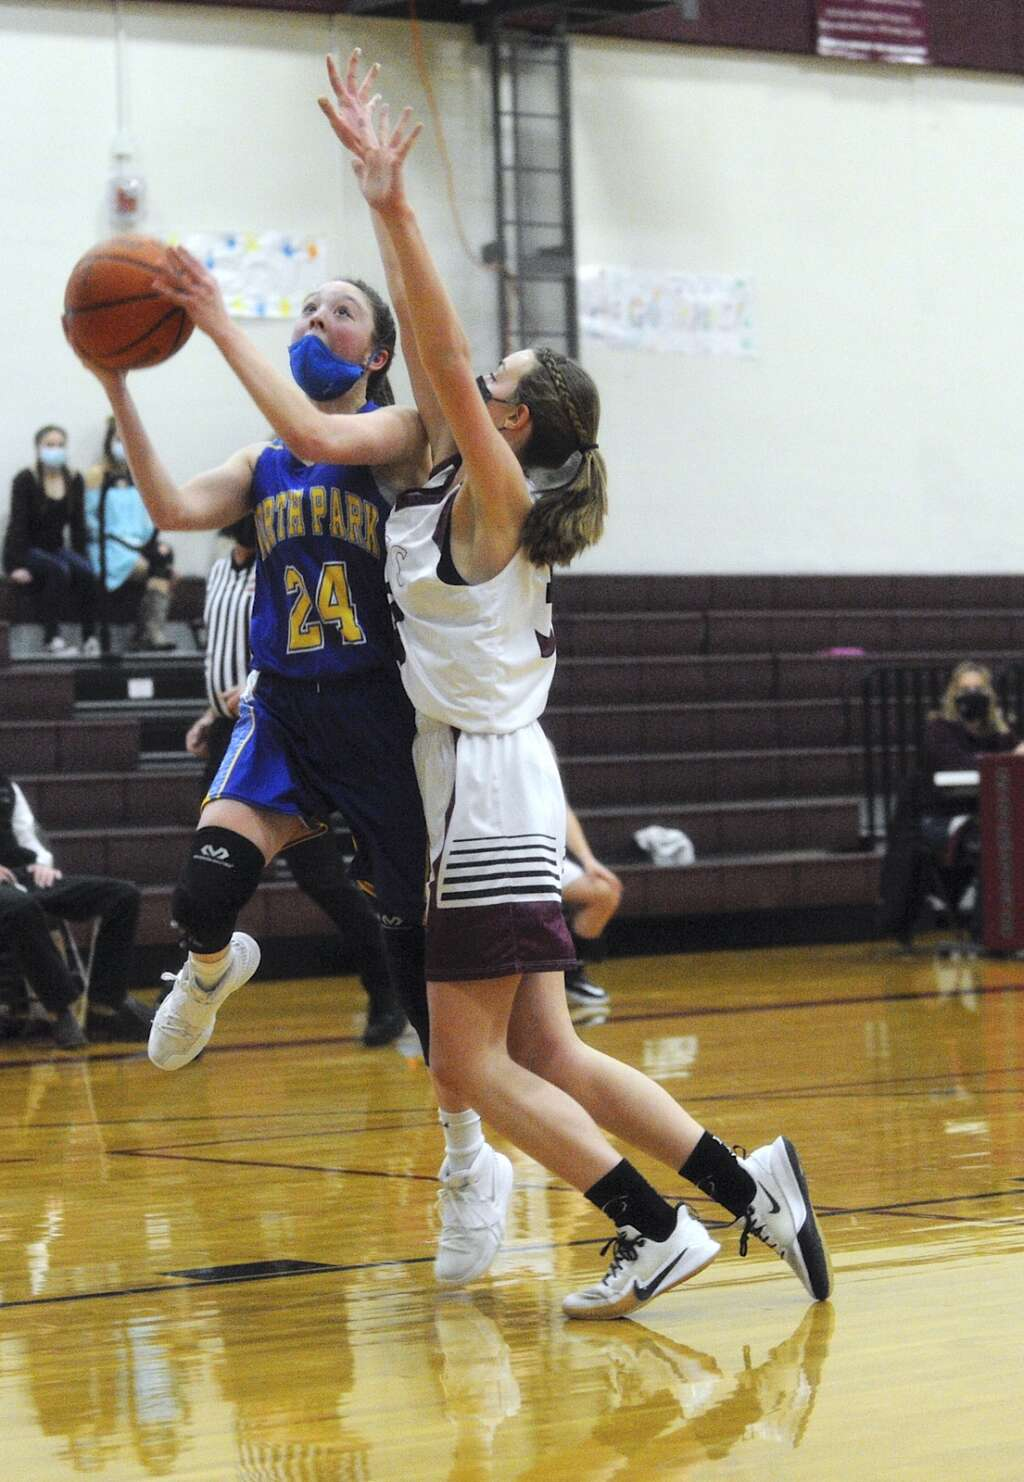 North Park junior Paige Sanchez attempts a shot despite coverage from Soroco junior Eden Mayer during a game in Oak Creek on Saturday afternoon. (Photo by Shelby Reardon)